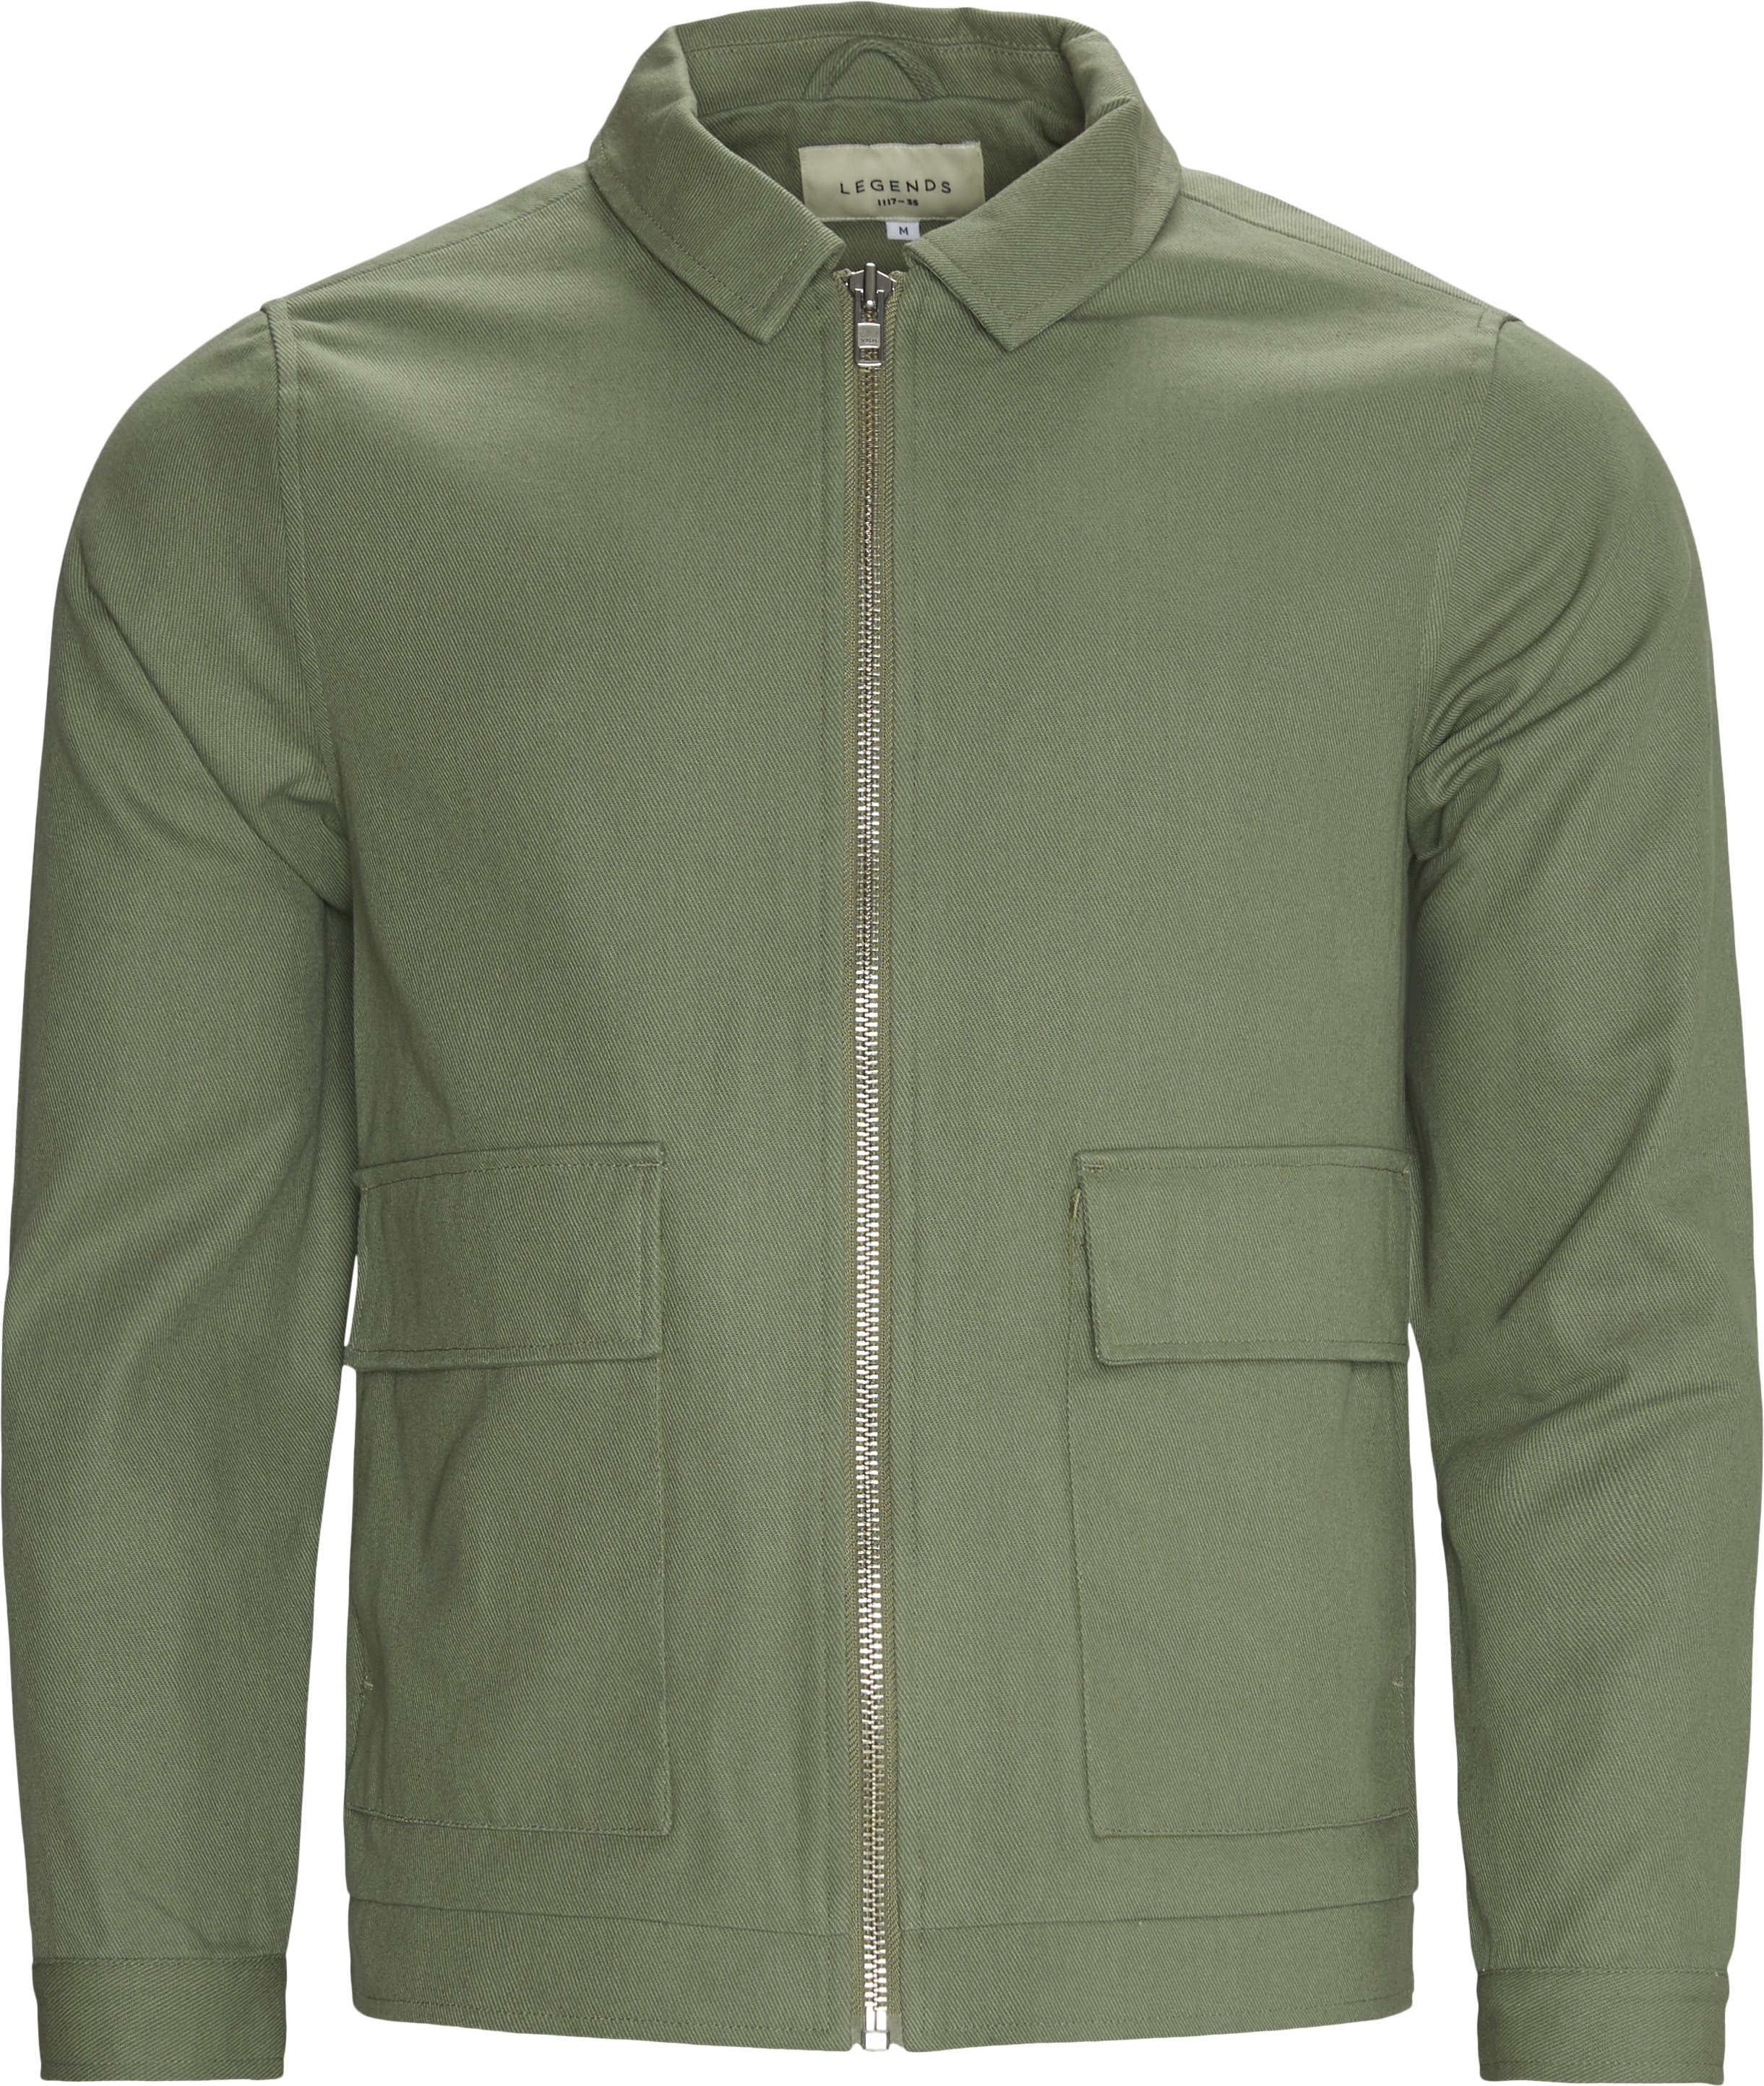 Ortega Jacket - Jakker - Regular - Grøn